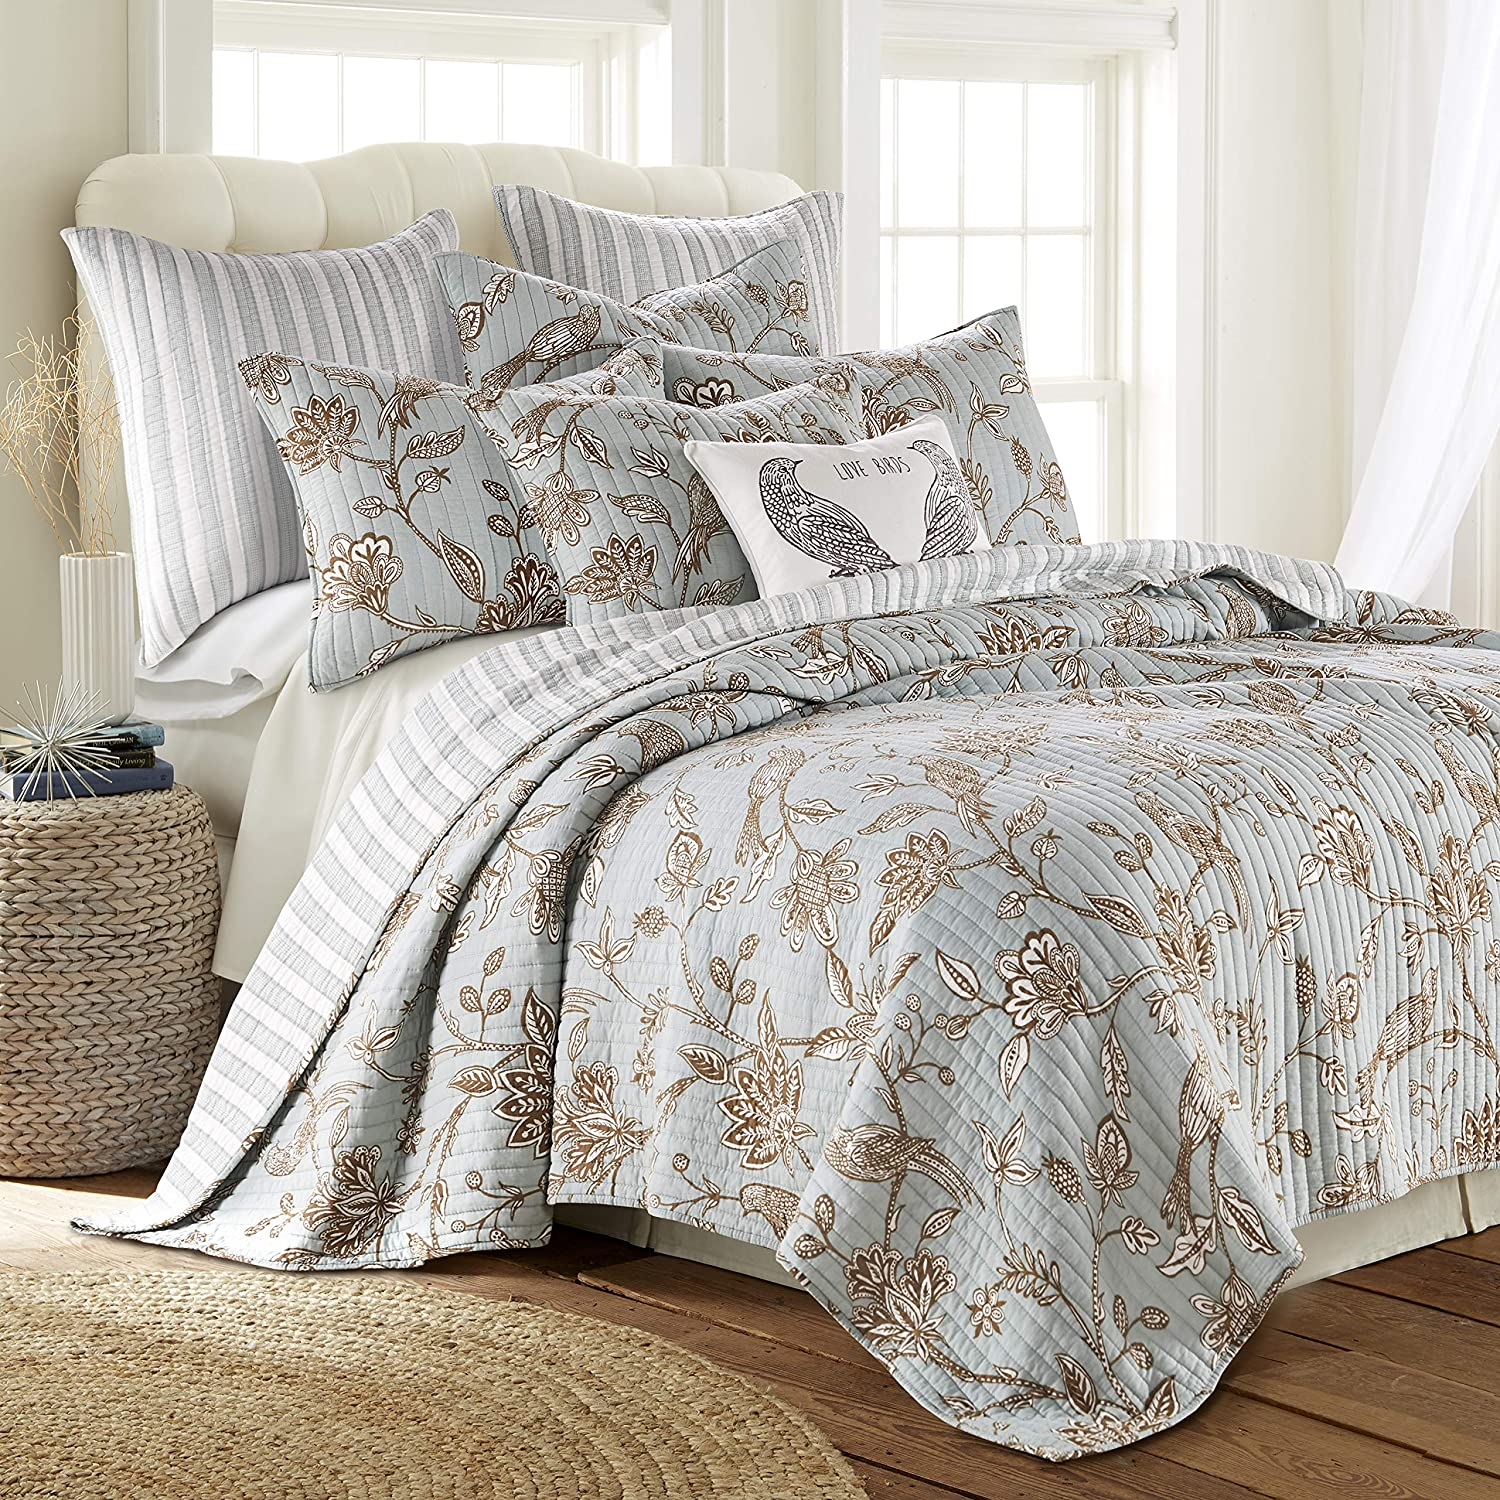 Levtex home - Tanzie Teal Quilt Set - Full/Queen Quilt + Two Standard Pillow Shams - Teal and White - Quilt (88x92in.) and Pillow Shams (26x20in.) - Reversible - Cotton Fabric